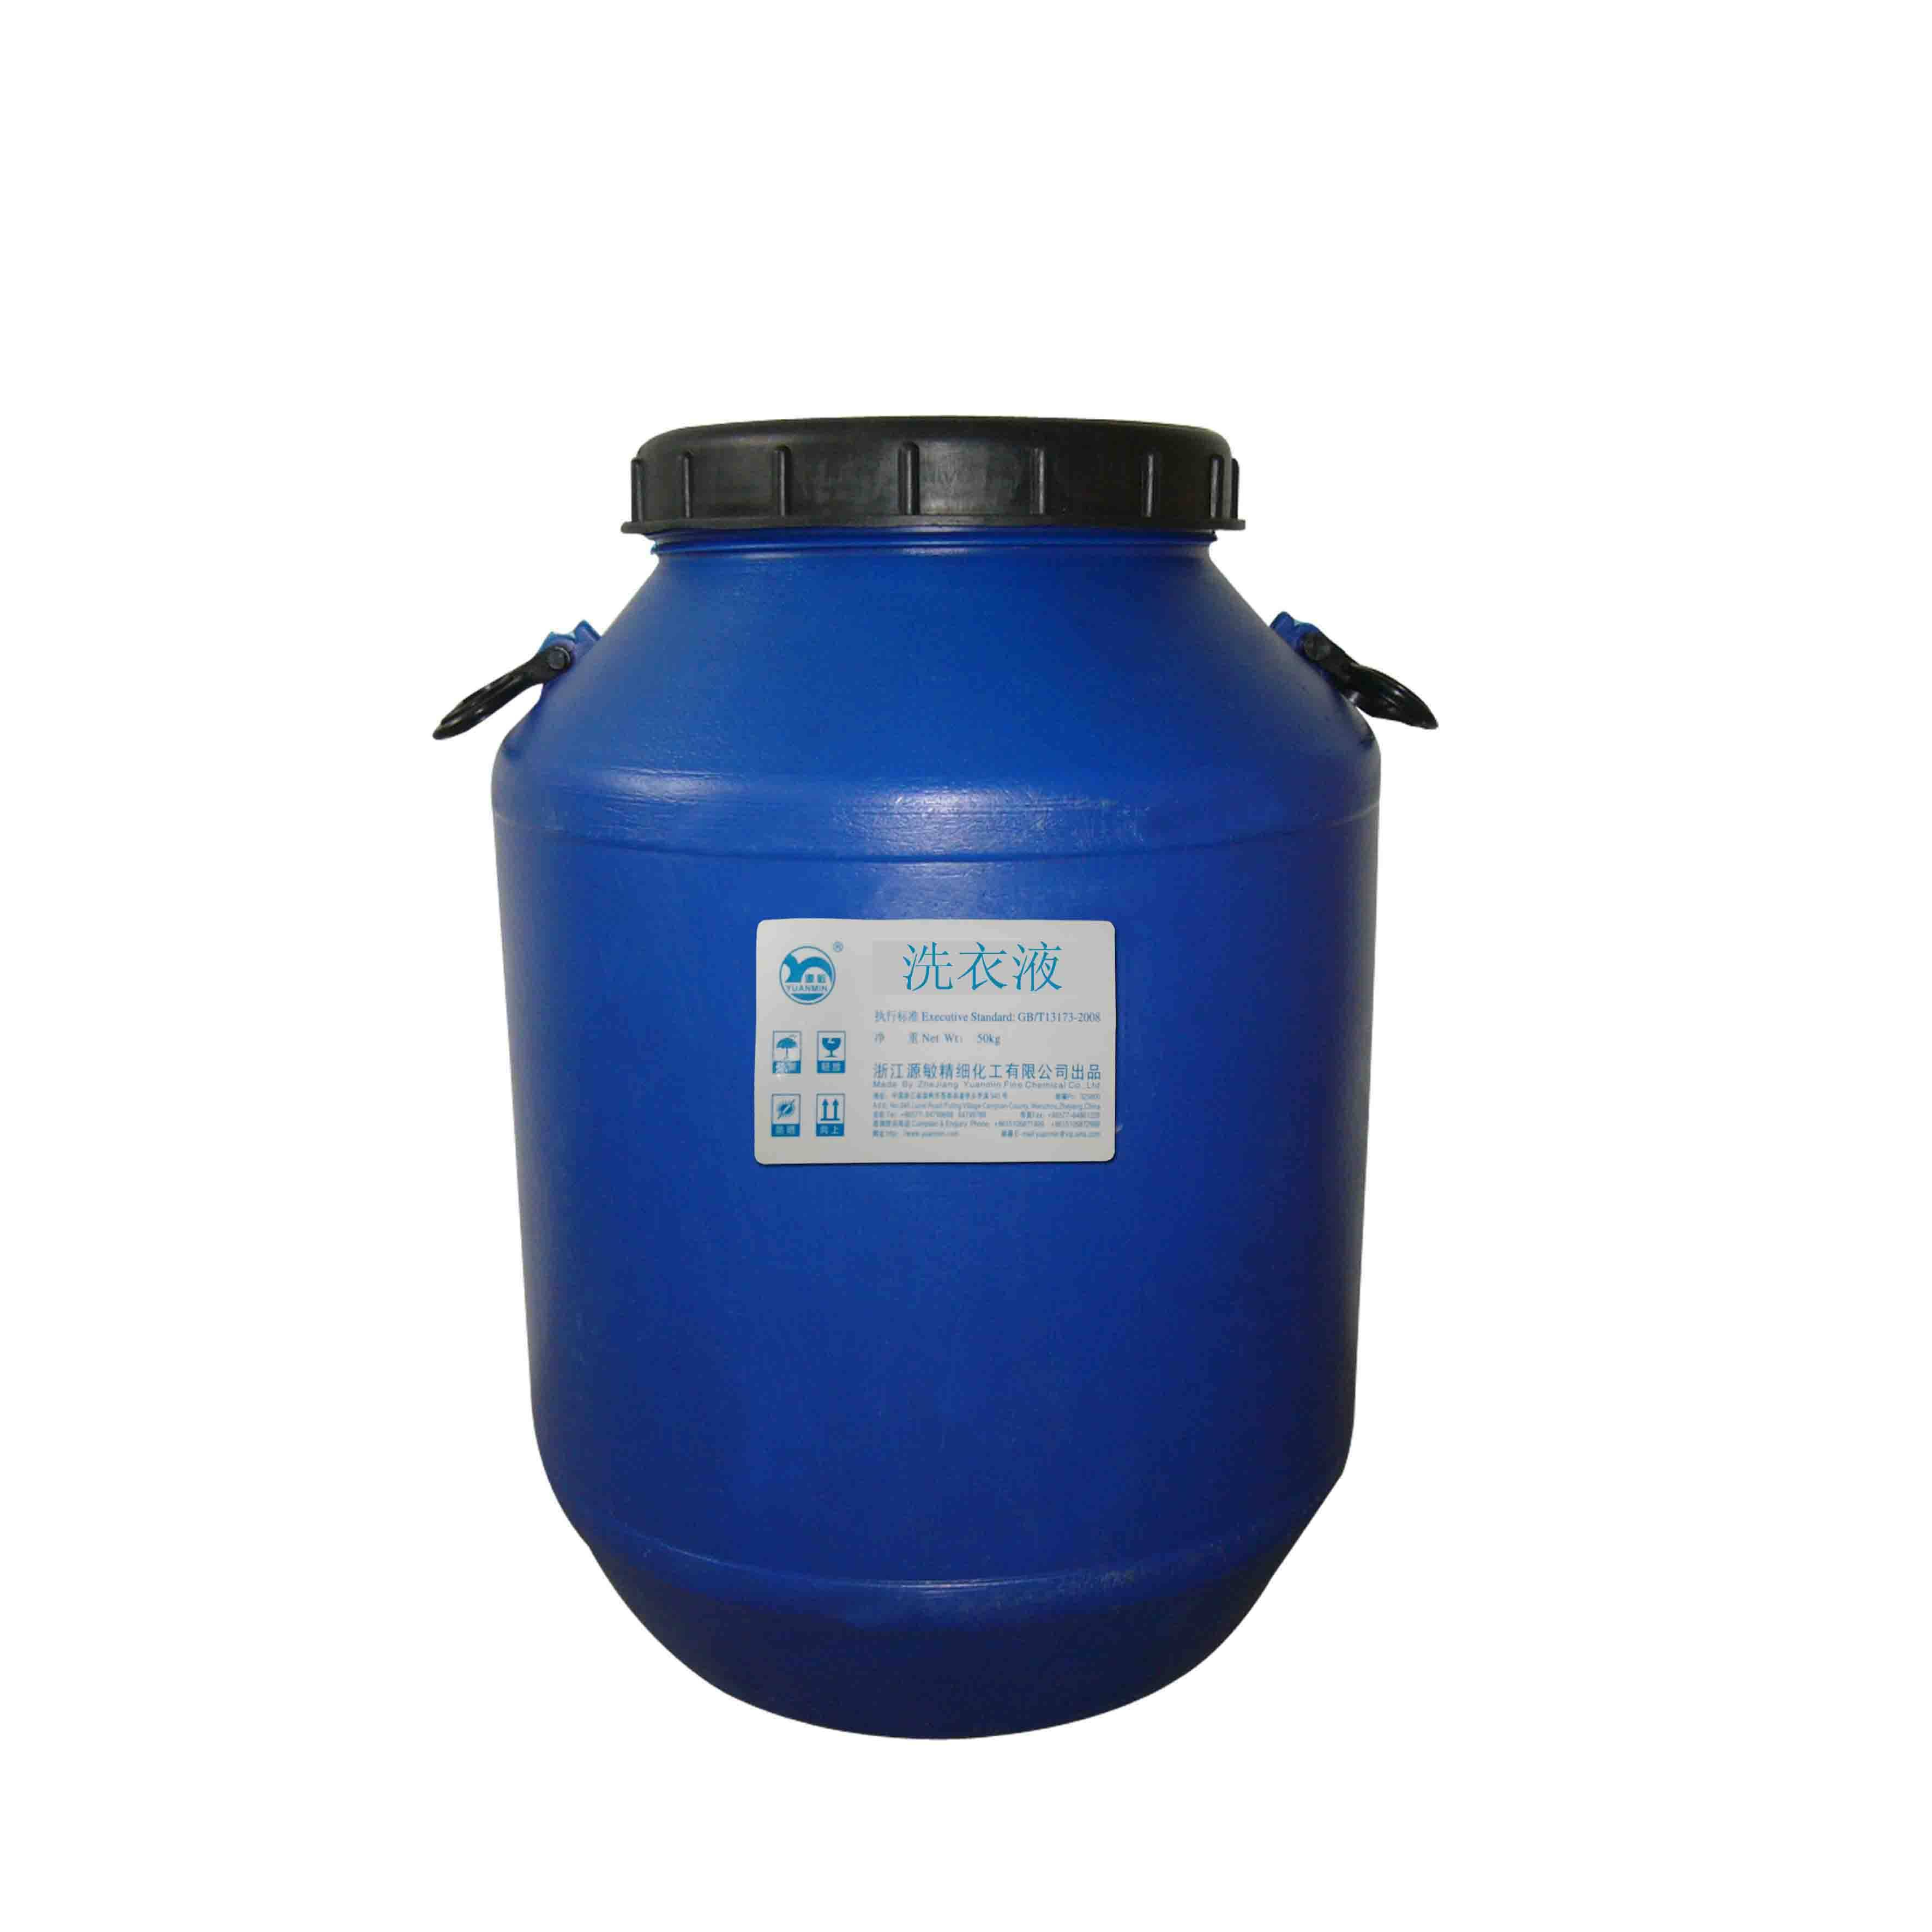 Laundry detergent raw material, Concentrated Daily Chemicals; Accept OEM